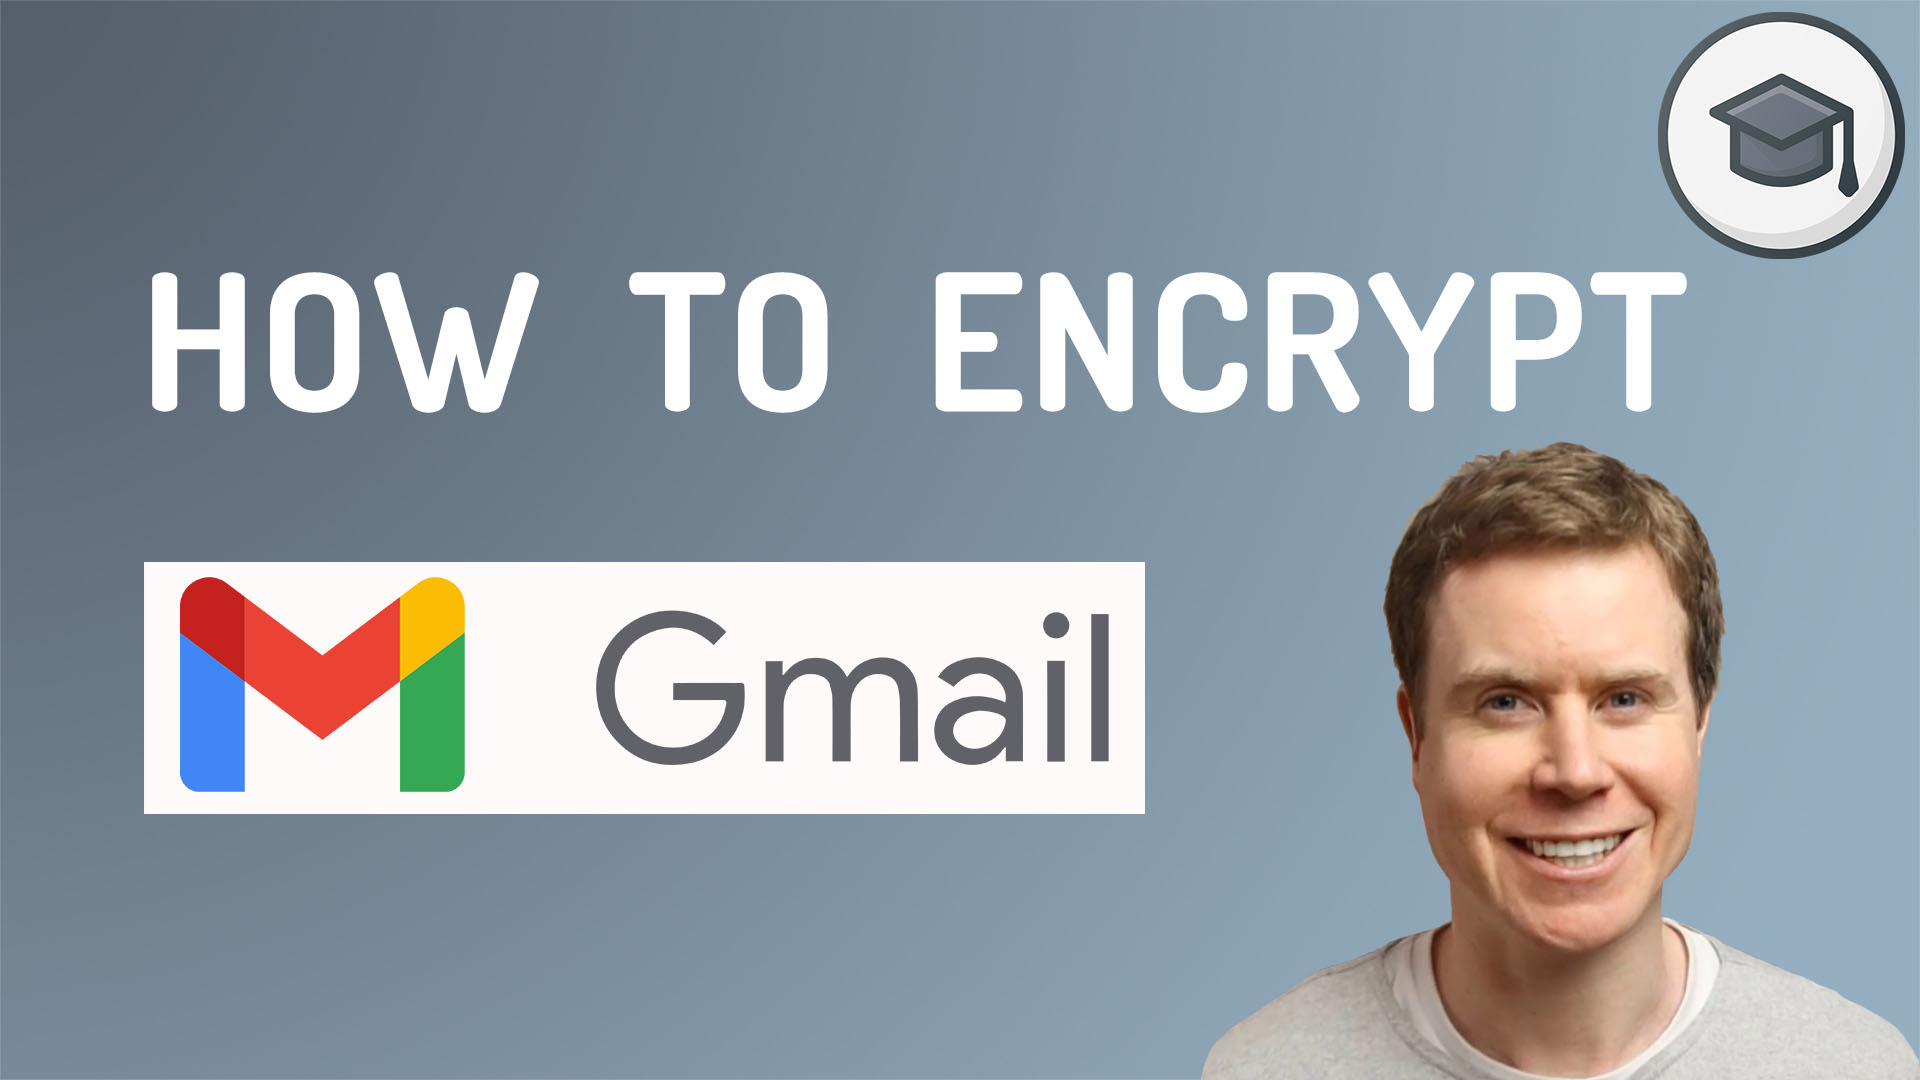 How To Encrypt Gmail - Feature Image